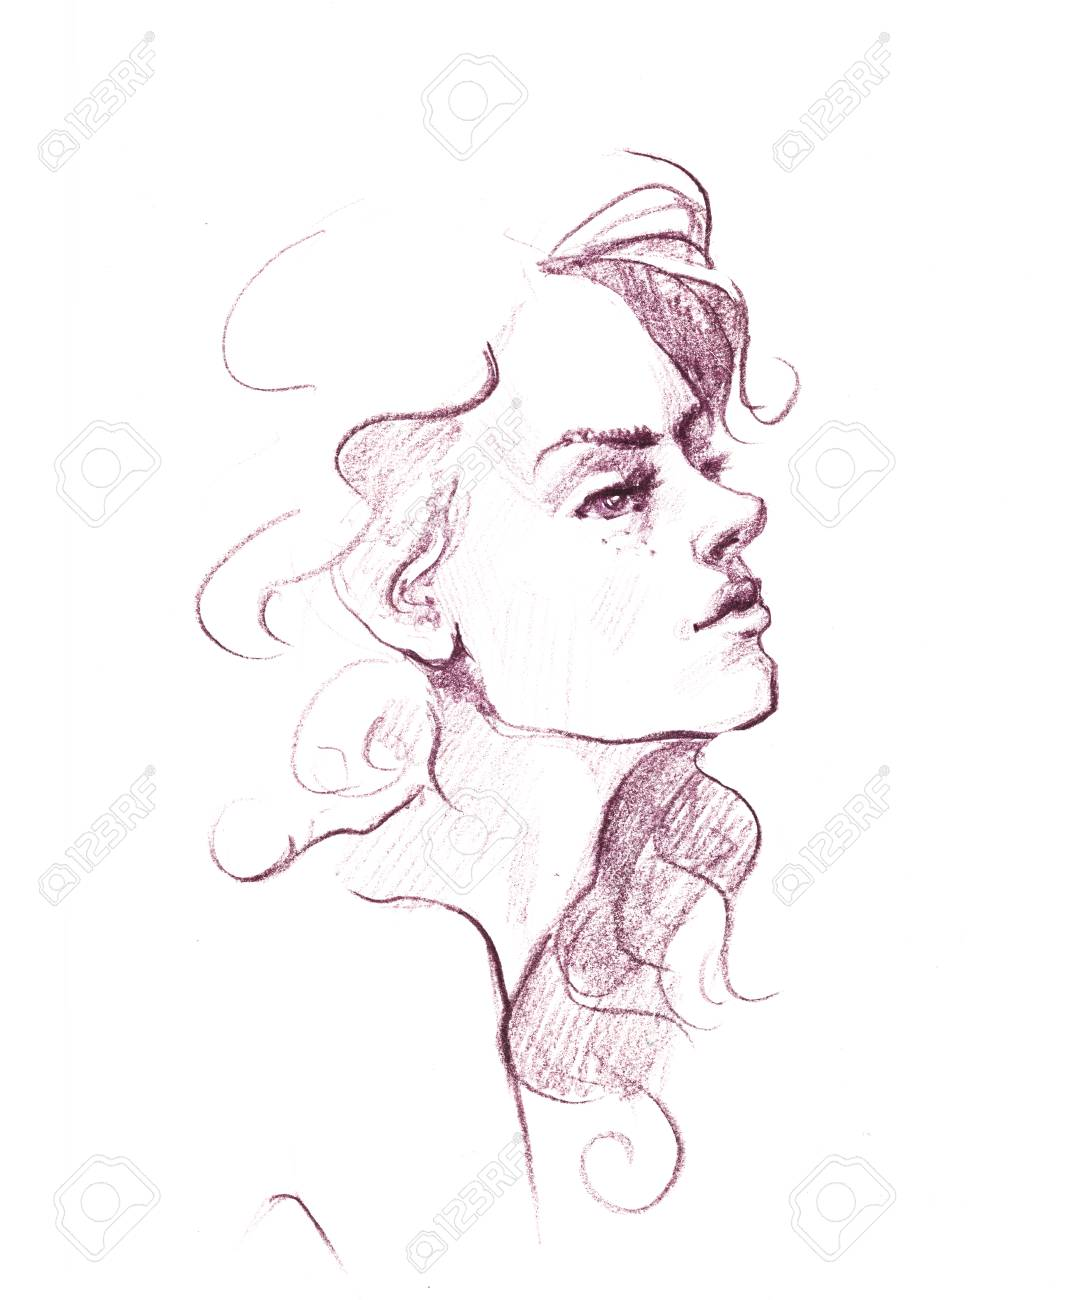 Hand drawn pencil sketch with face of a girl female portrait stock photo